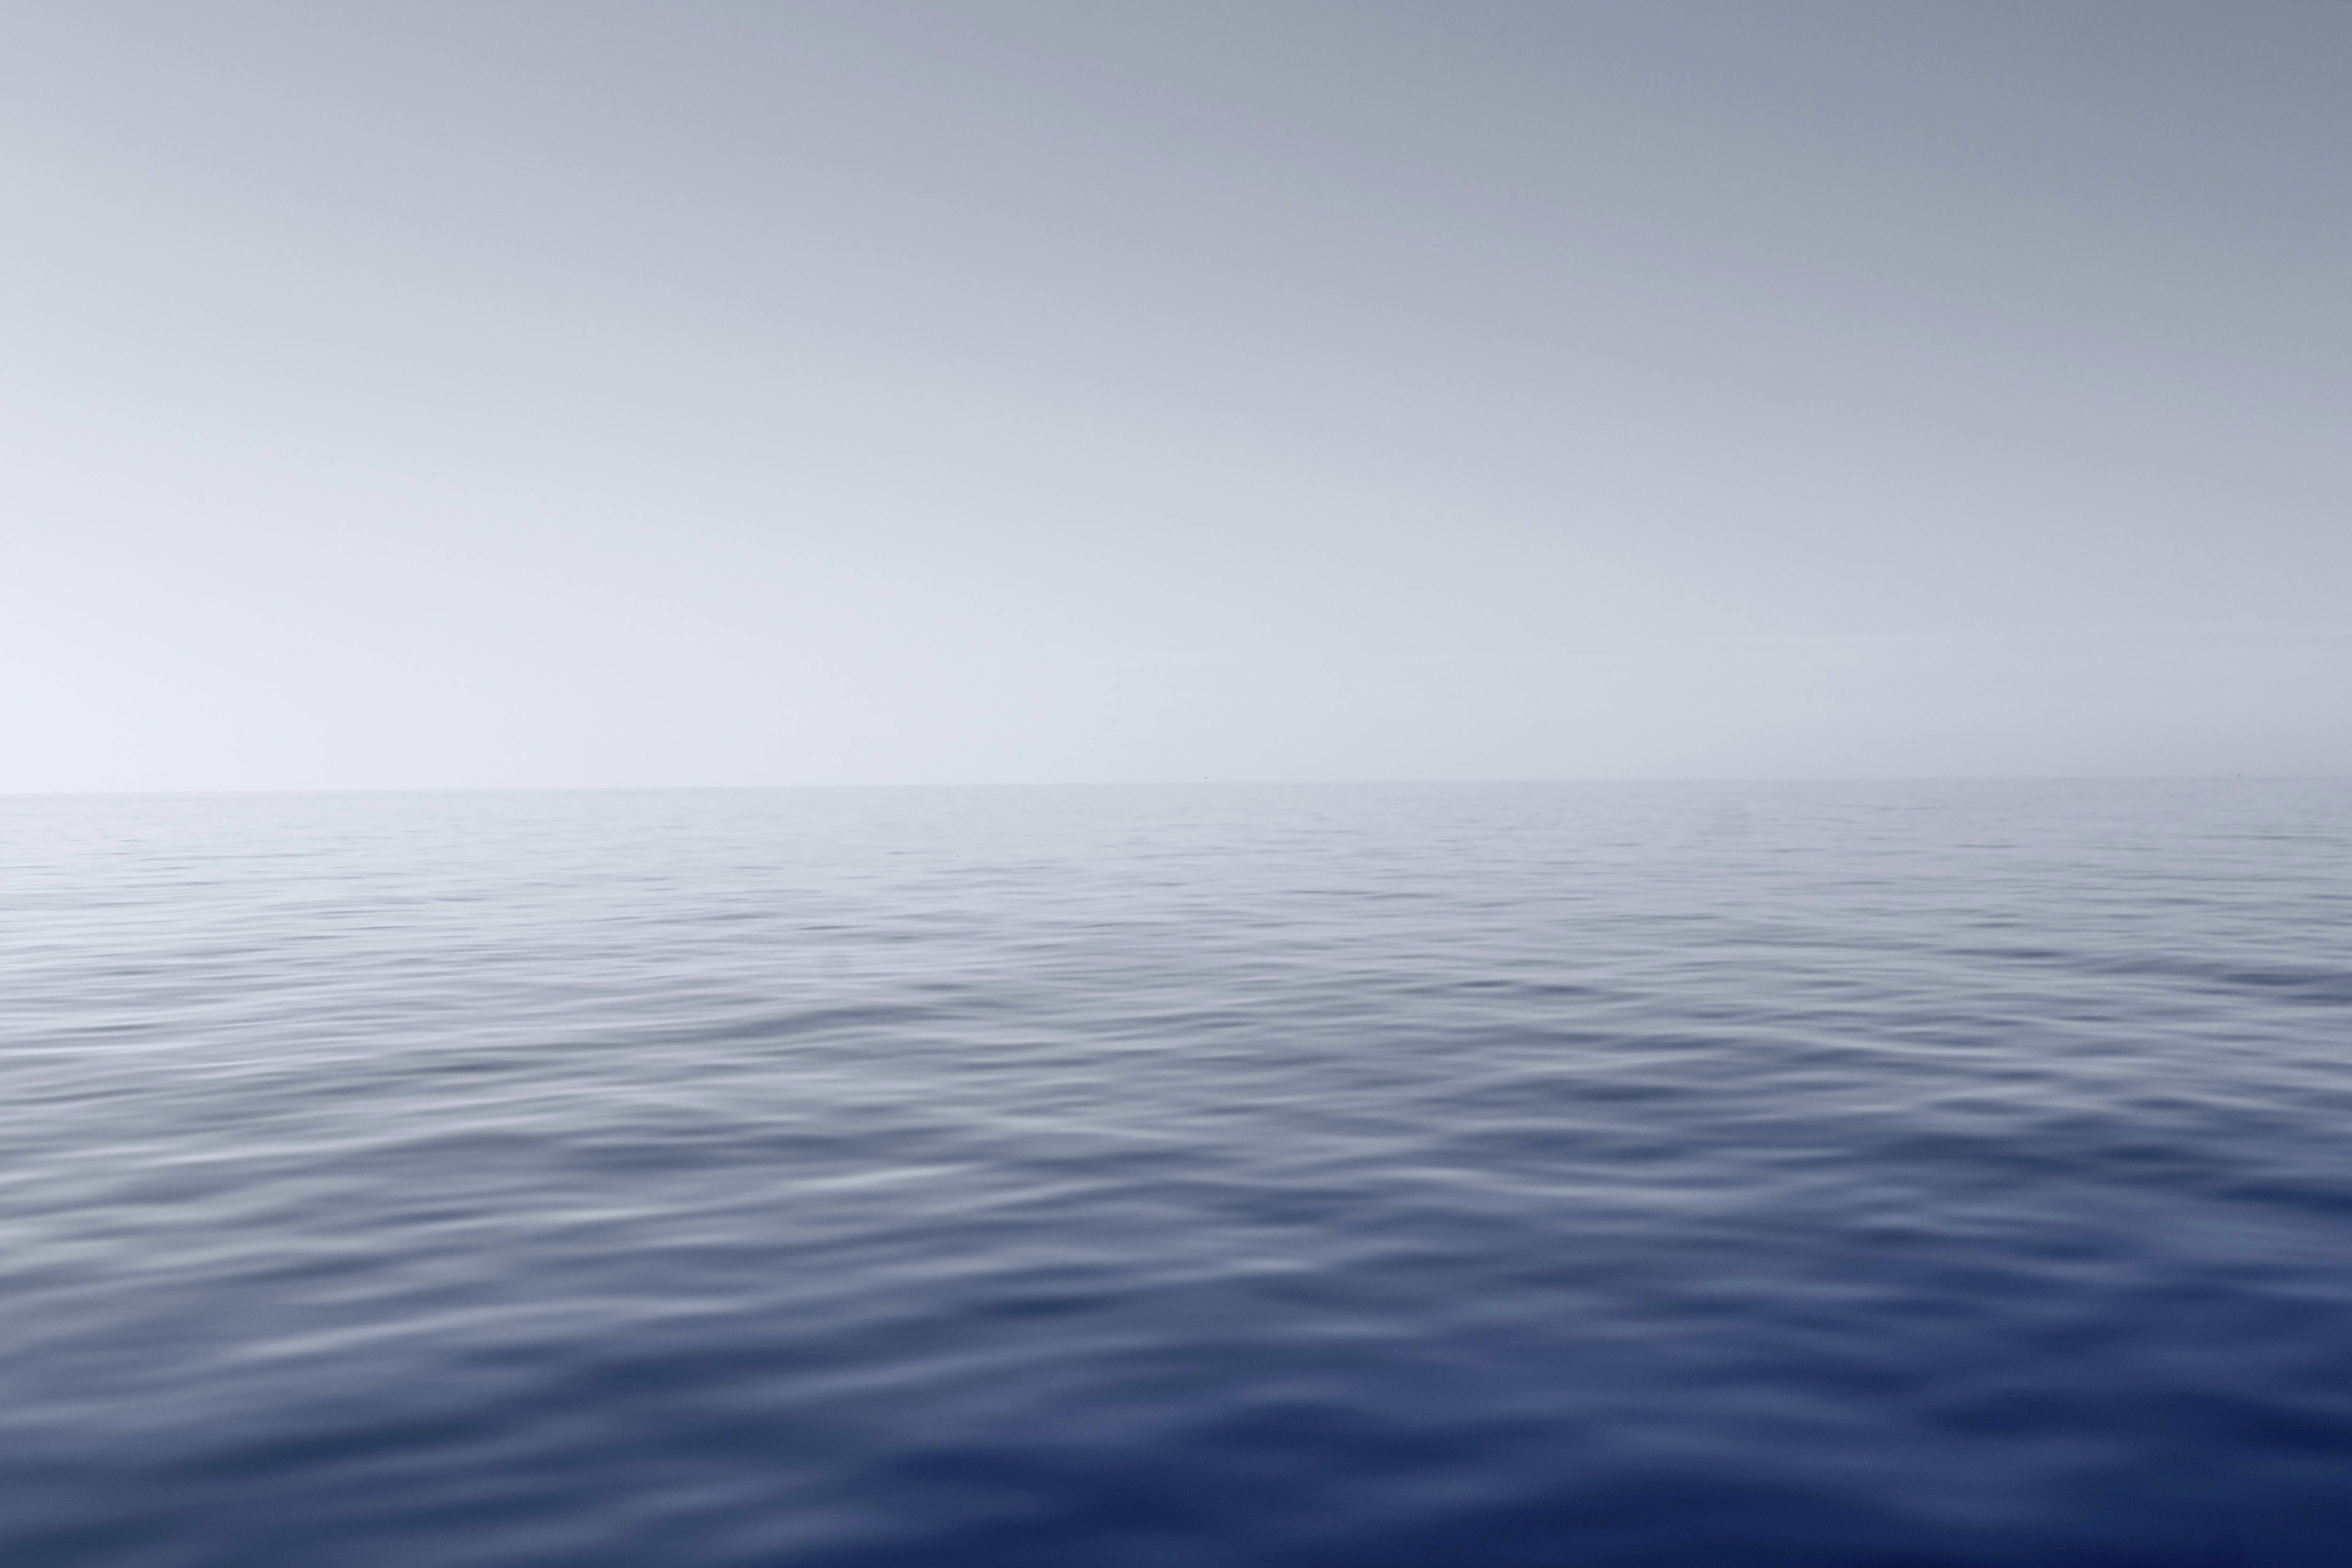 Blue Body of Water With Fog